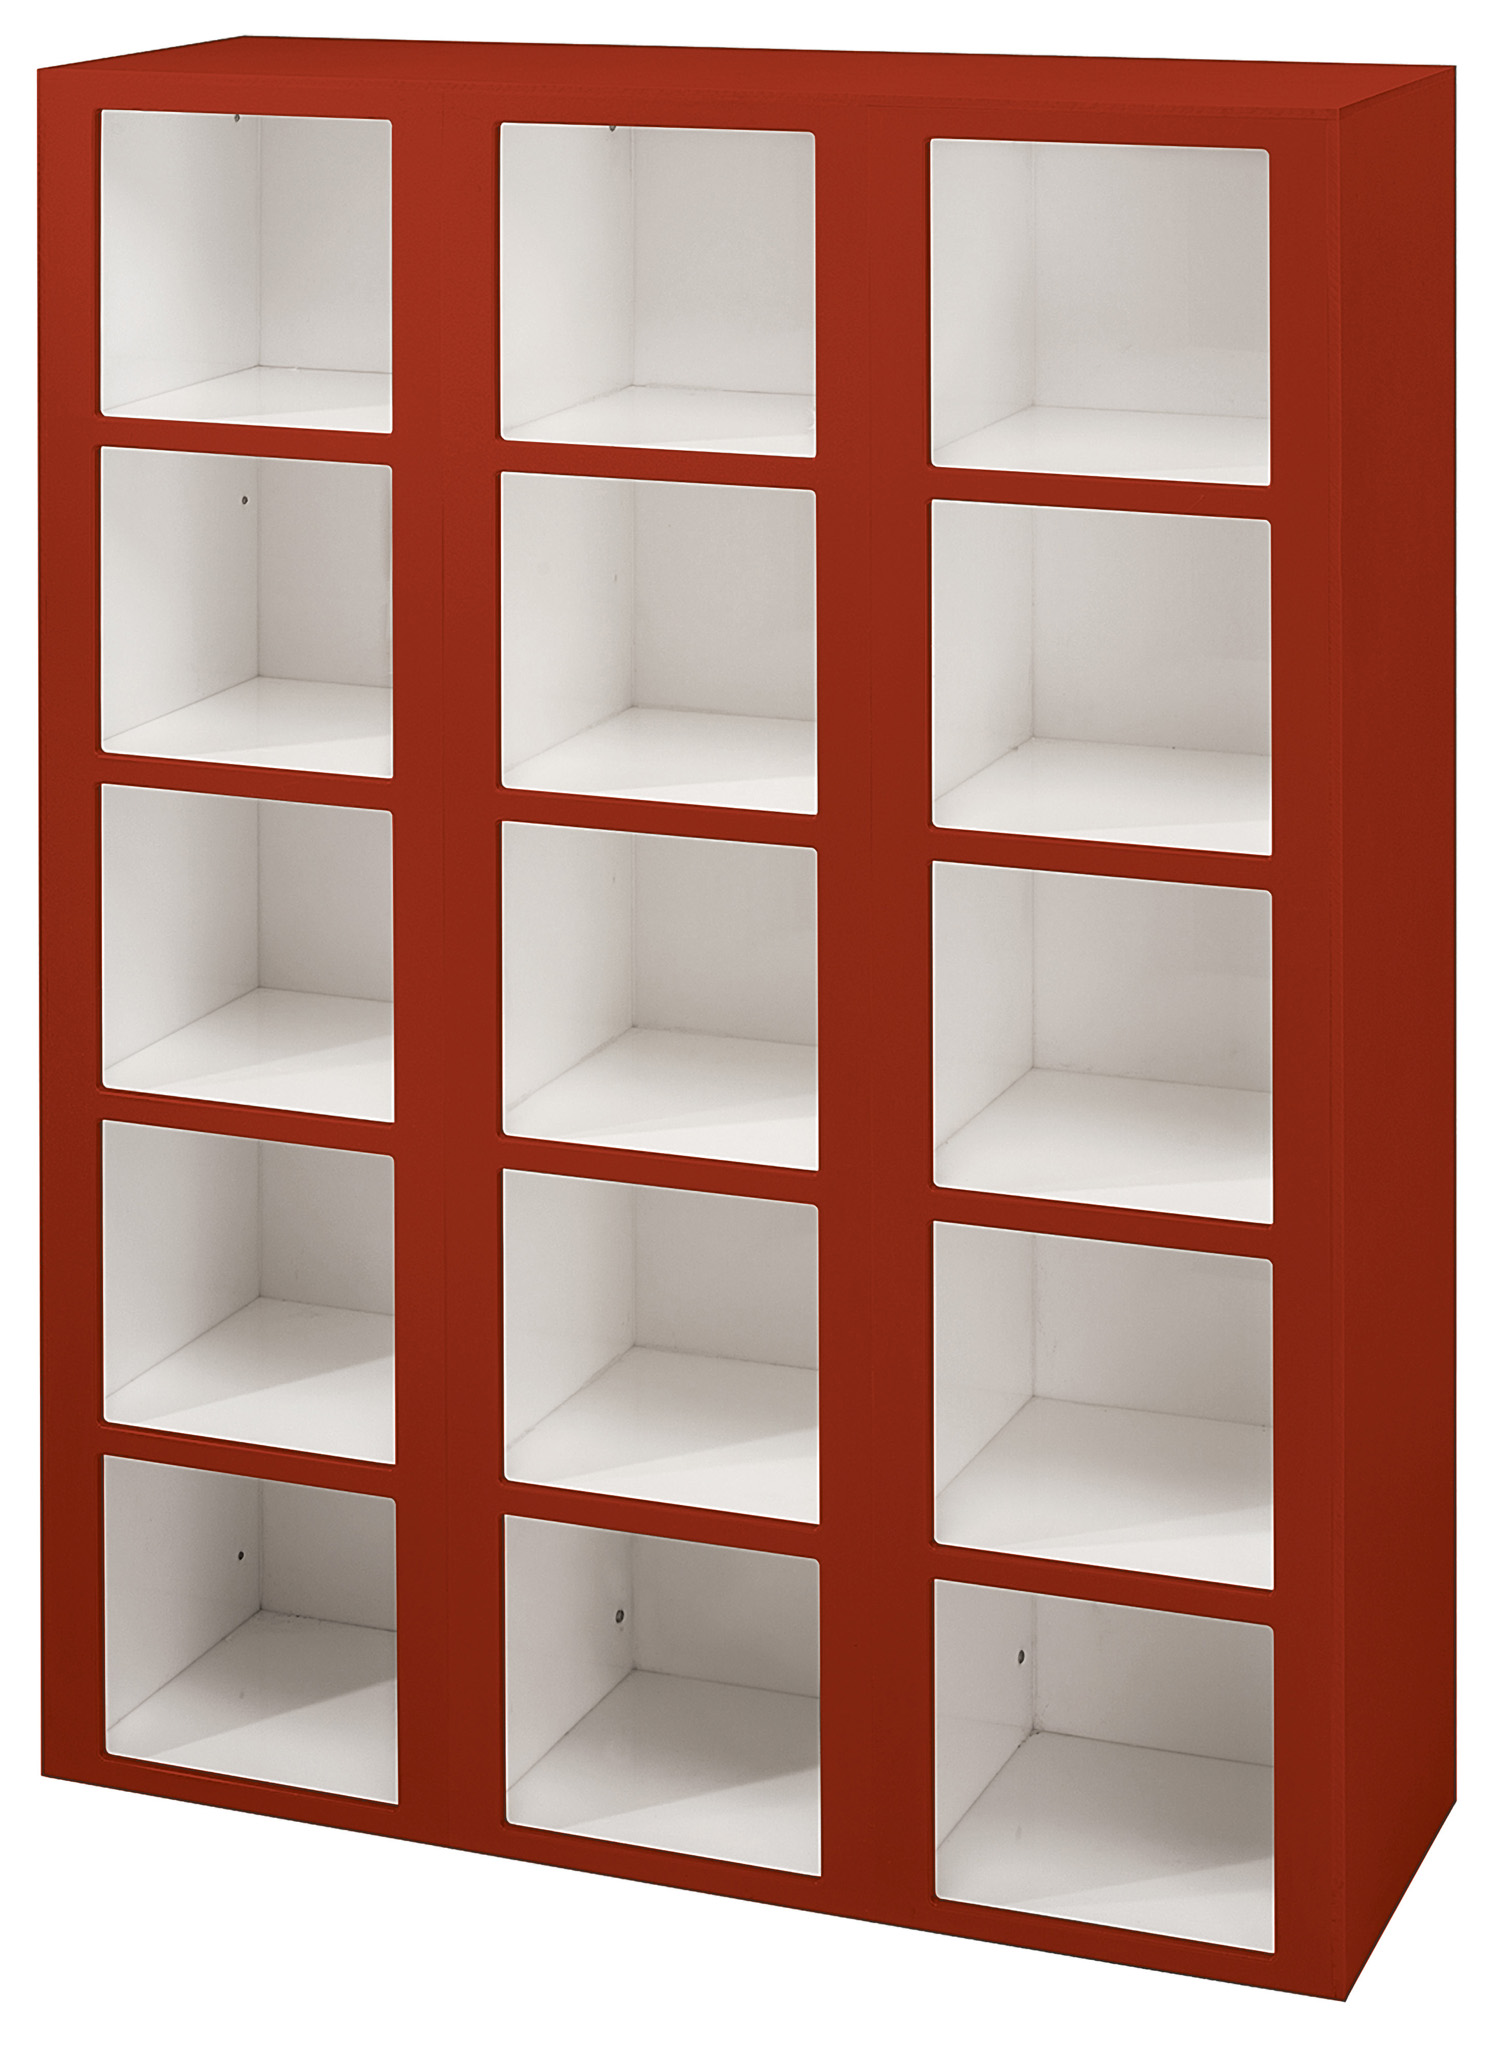 Cubby Organizer Storage Systems Are Solid Plastic Heavy